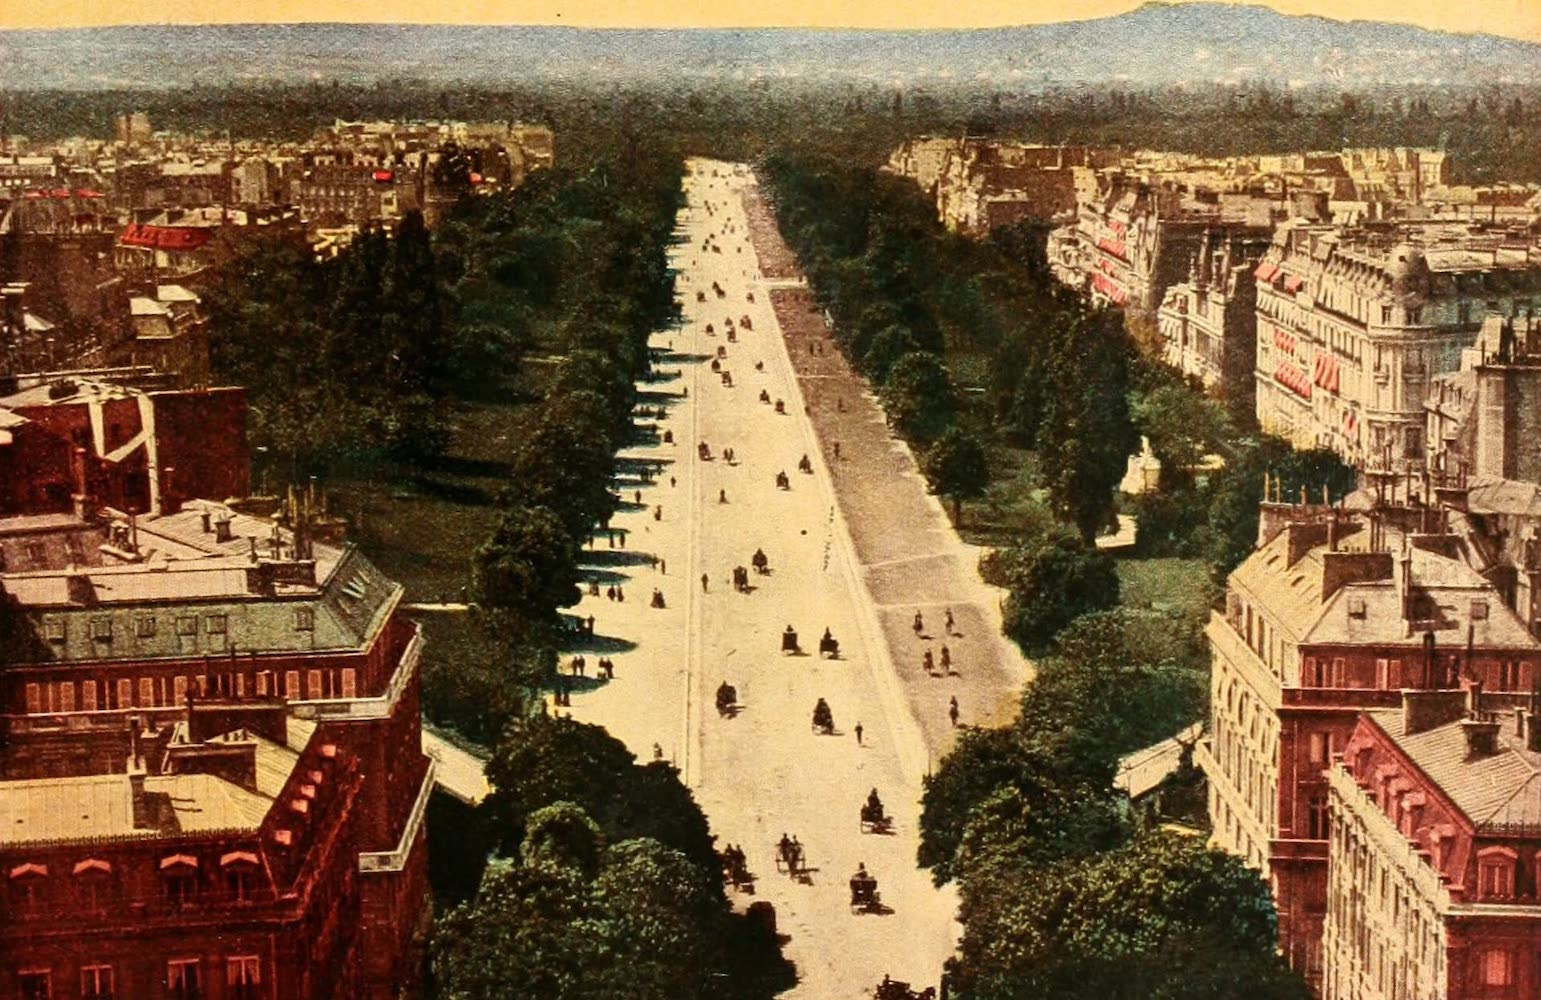 Laird & Lee's World's War Glimpses - View of Paris, the French Capital (1914)